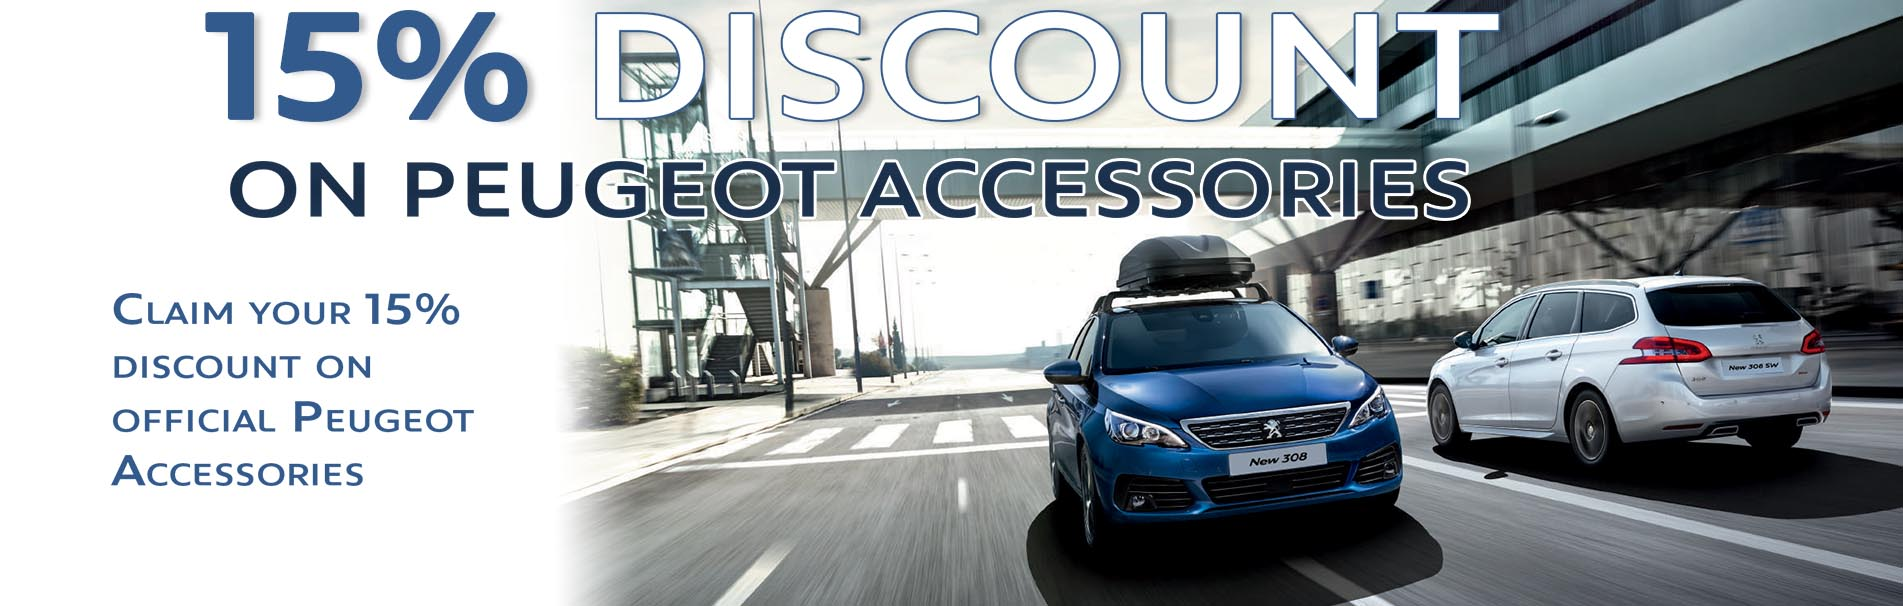 15-percent-discount-on-peugeot-accessories-sli